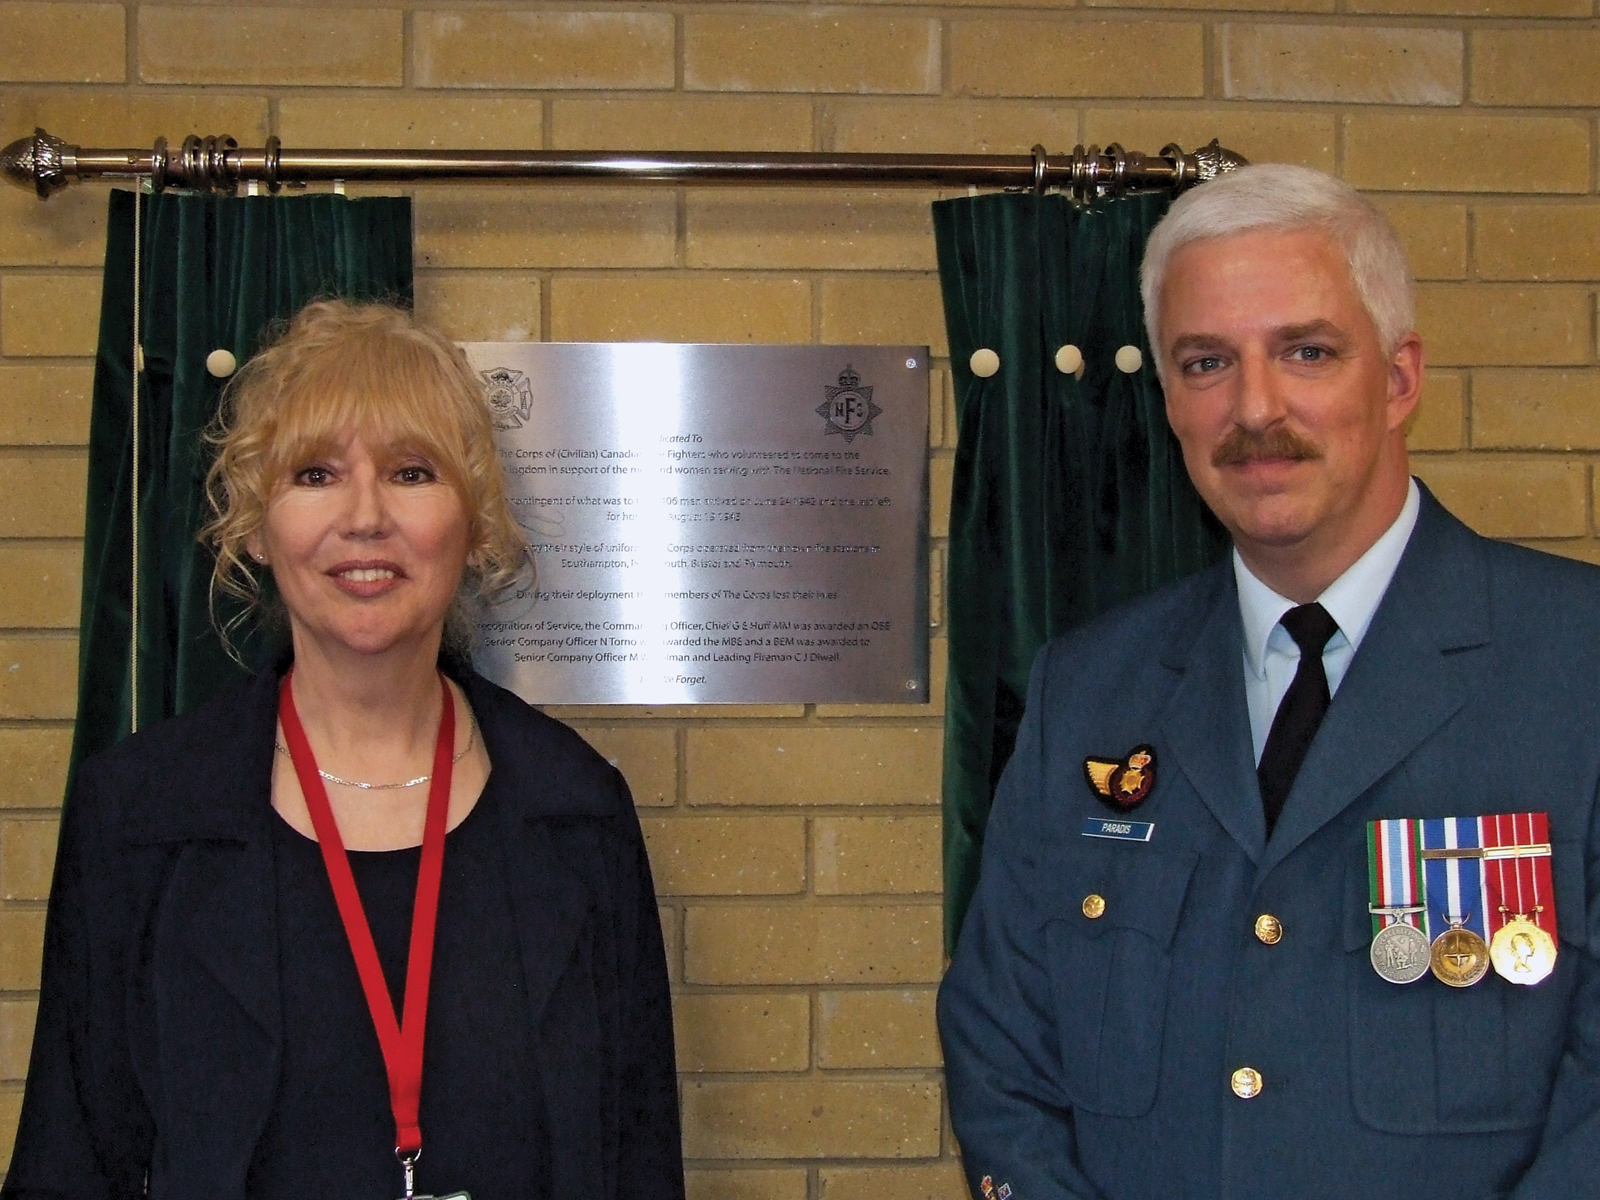 Elaine Bryce, daughter of Gordon Bryce, a member of the Corps of Canadian Firefighters, with CWO Bruce Paradis at the plaque unveiling to honour the Corps.